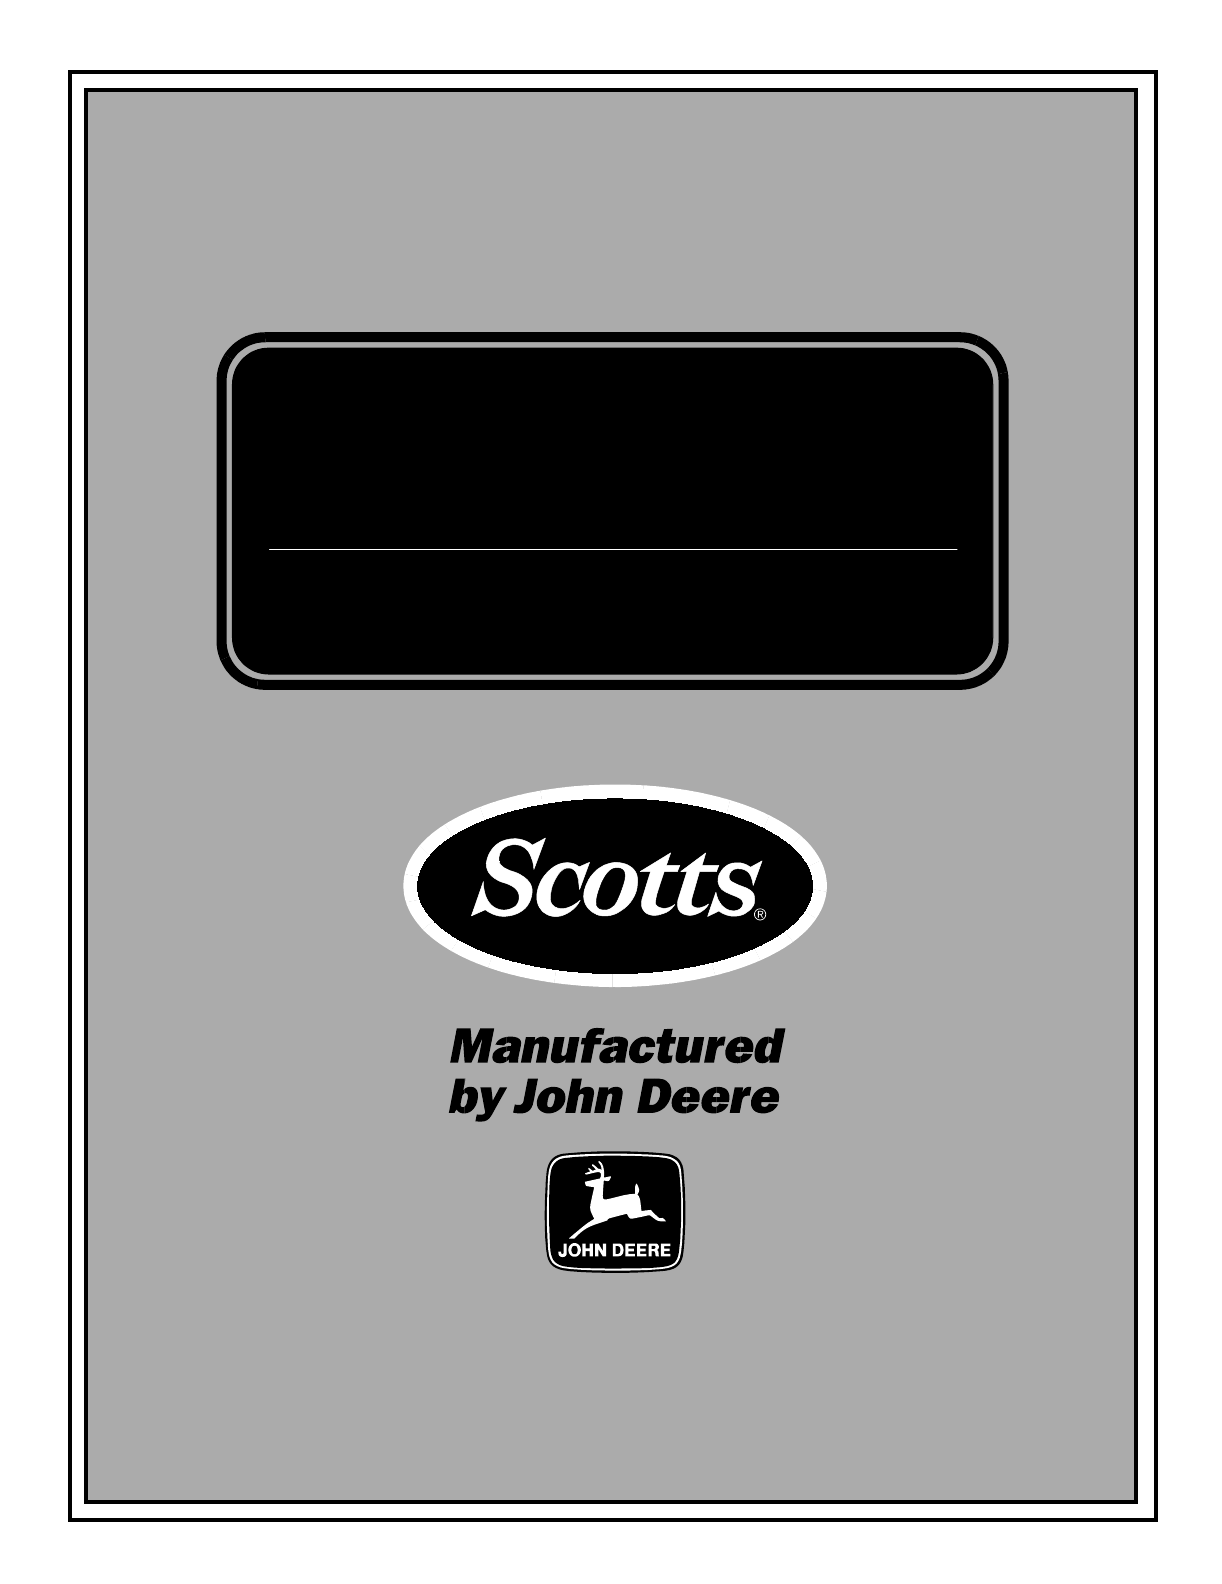 scotts lawn mower s1642, s1742, s2046 user guide manualsonline com scotts s1642 wiring diagram scotts 1642h wiring diagram